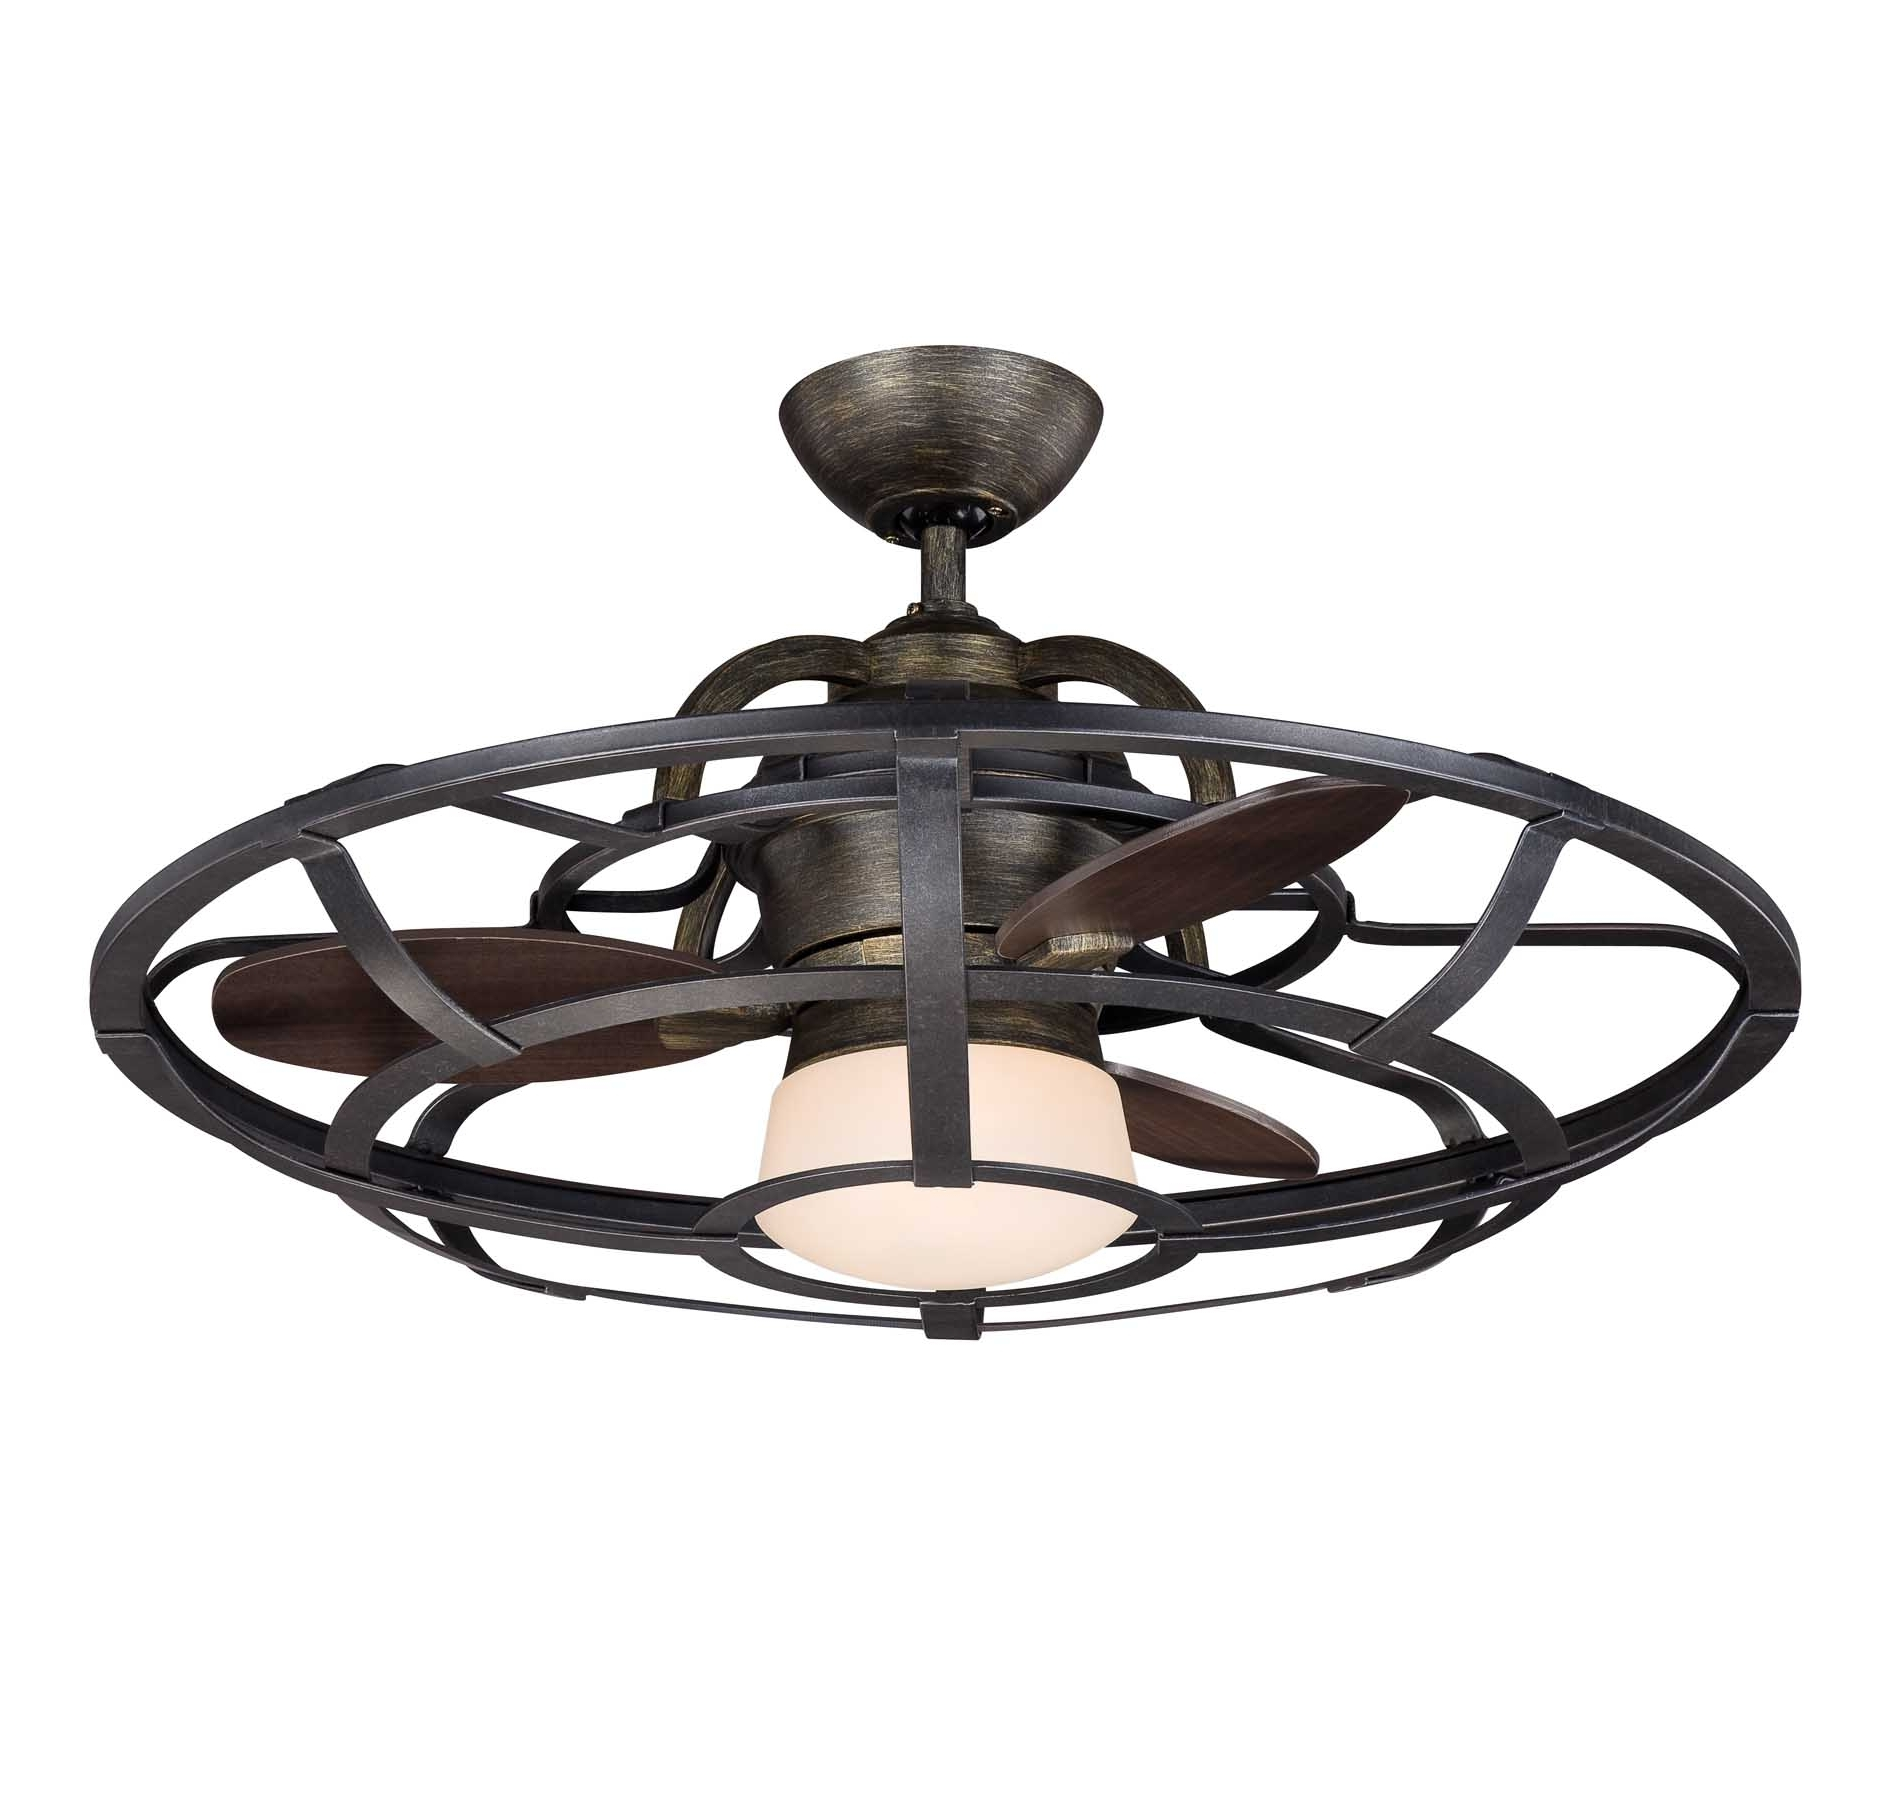 Famous Ceiling: Astounding Small Outdoor Ceiling Fan Hunter Outdoor Ceiling Pertaining To Outdoor Ceiling Fans With Cage (View 4 of 20)